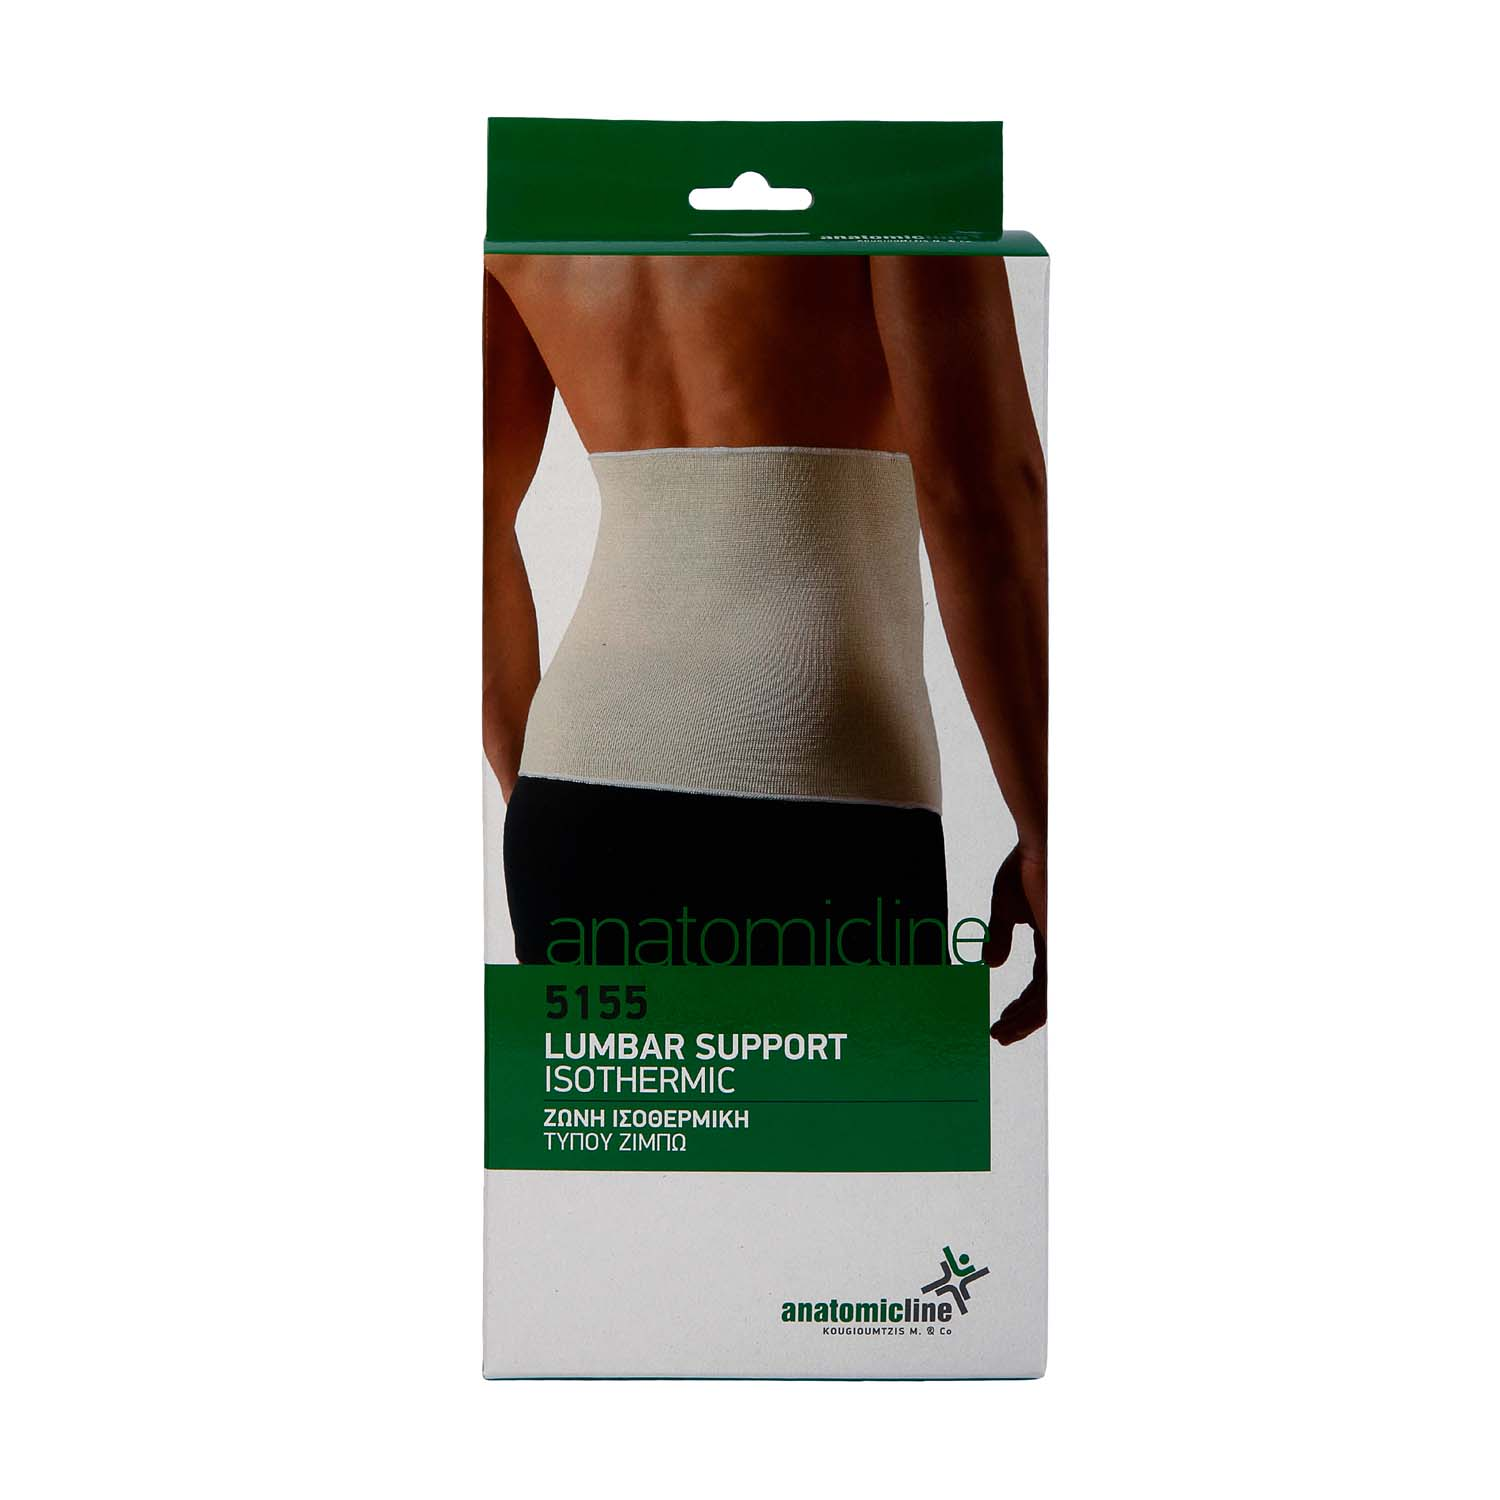 Lumbar Support - Isothermic